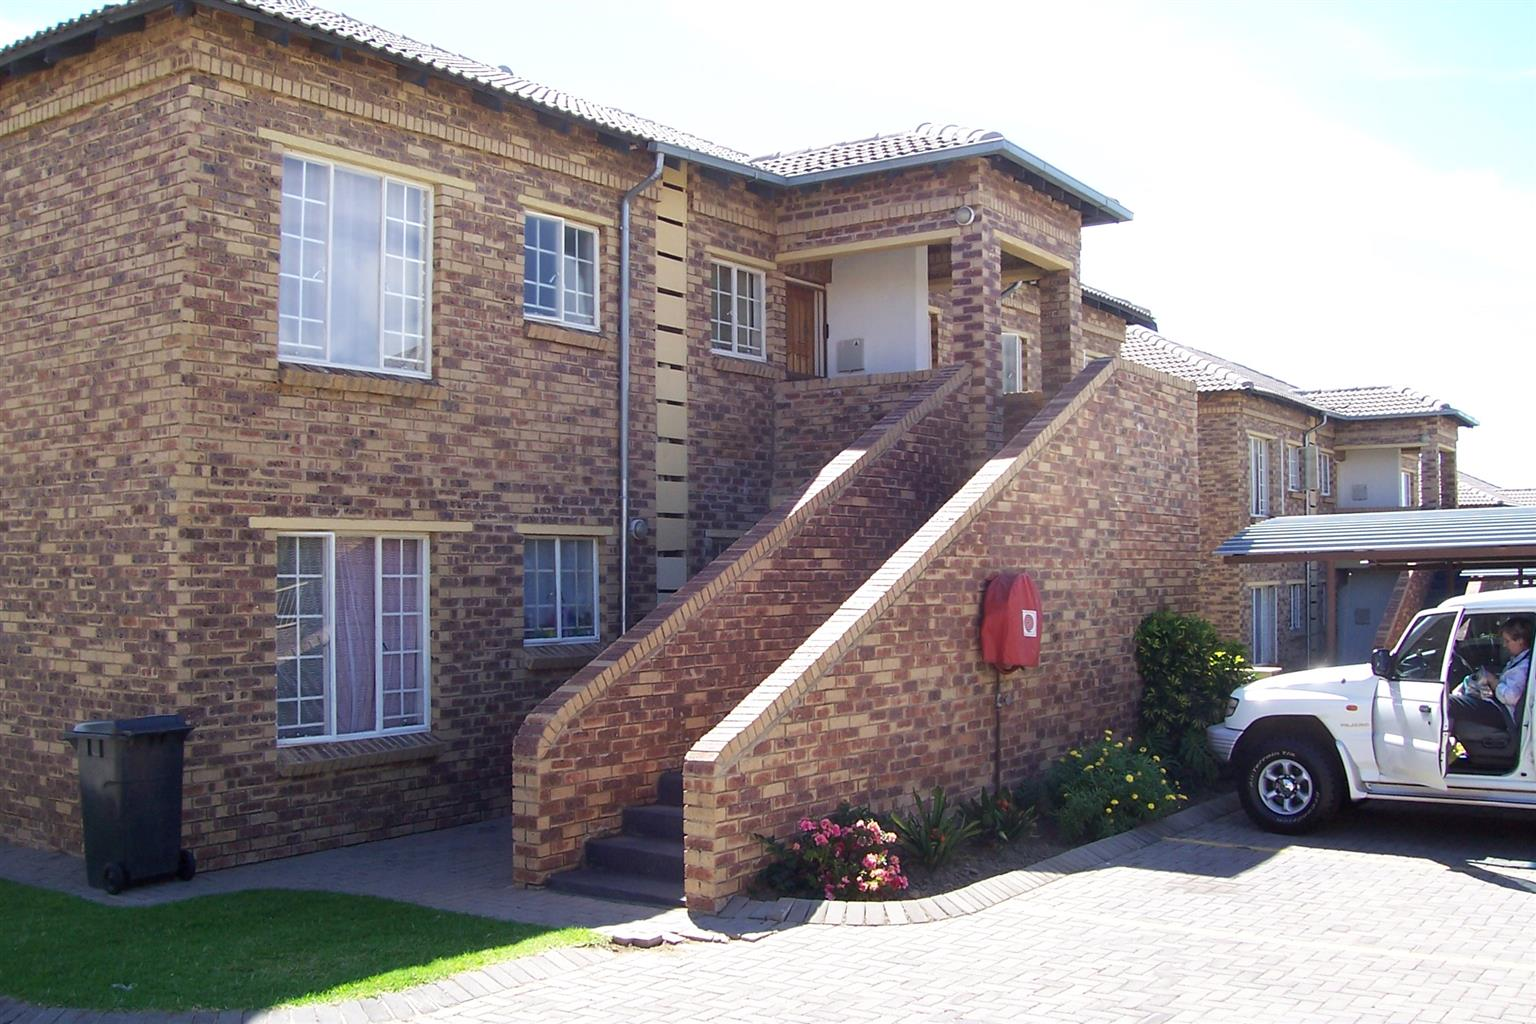 Rent only R3000 for December! Two bedrooms, one bathroom townhouse to let in Midrand, Erand gardens